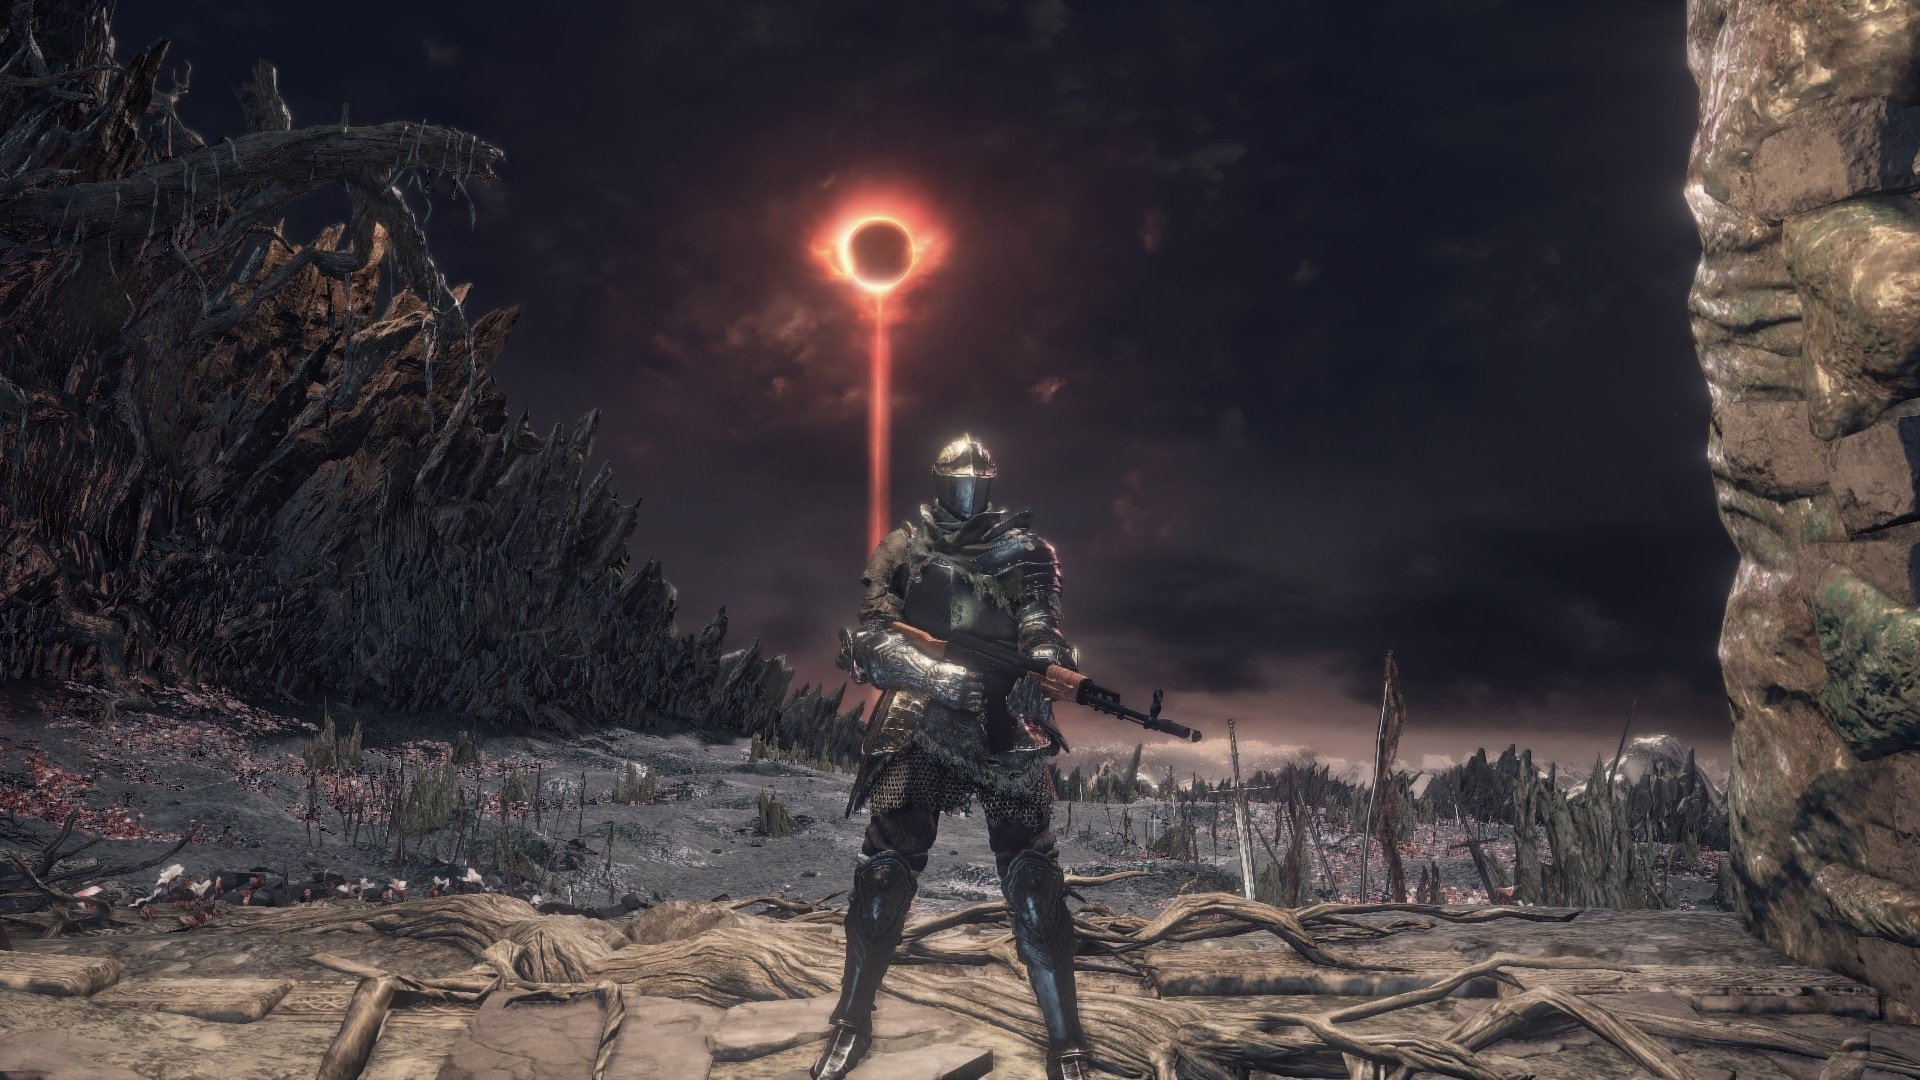 Sun's out, guns out (literally) in this Dark Souls III mod